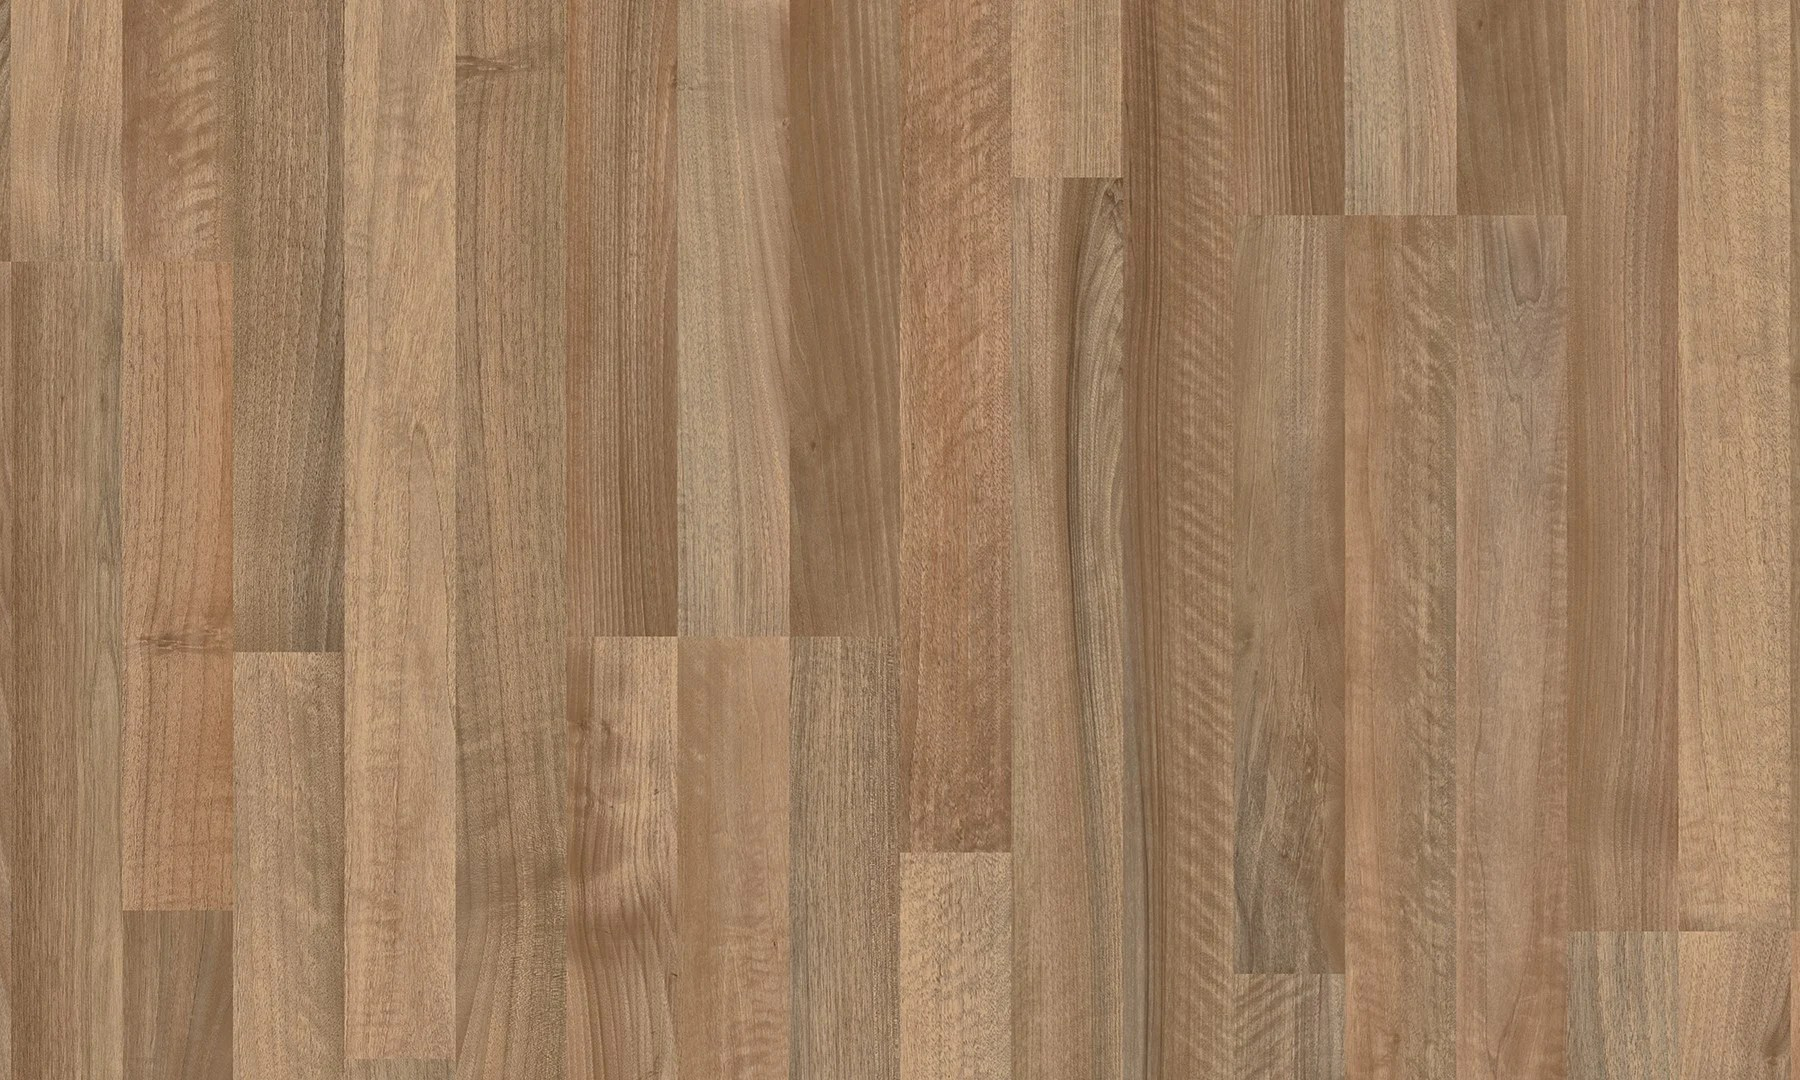 Pergo Parquet Laminate Flooring Soft Walnut 3 Strip By Pergo